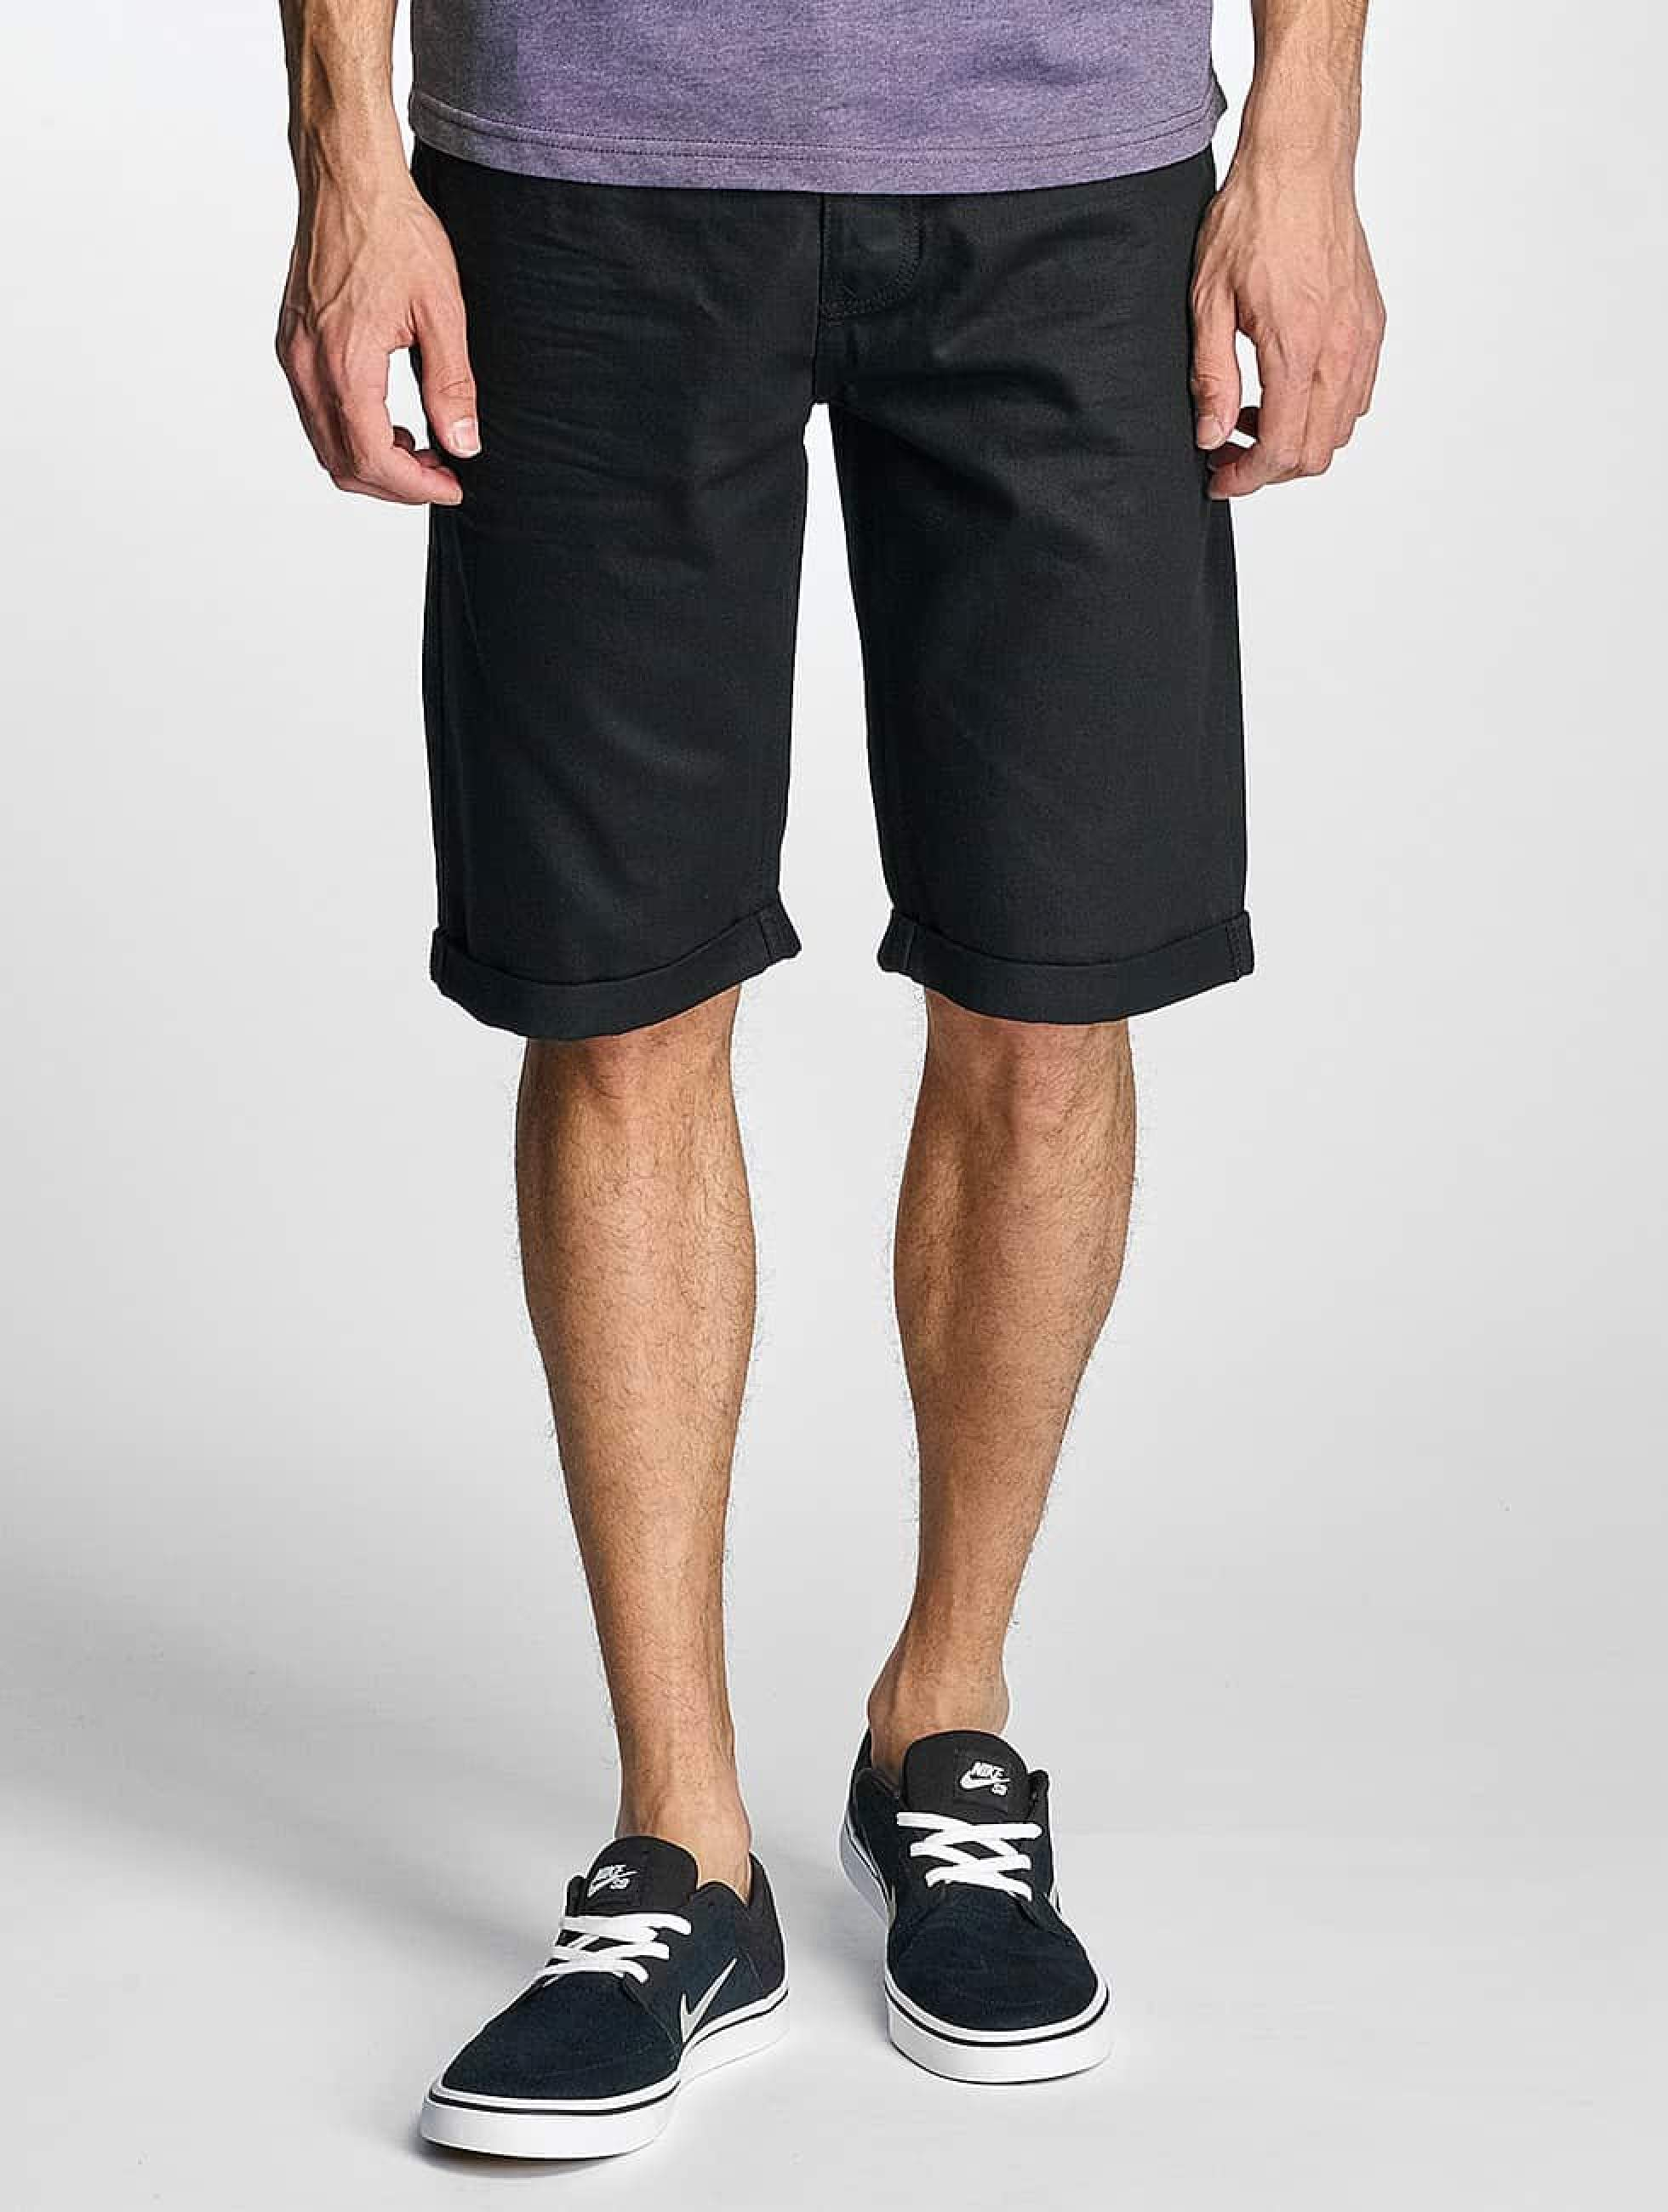 Just Rhyse / Short Dakar in black XL